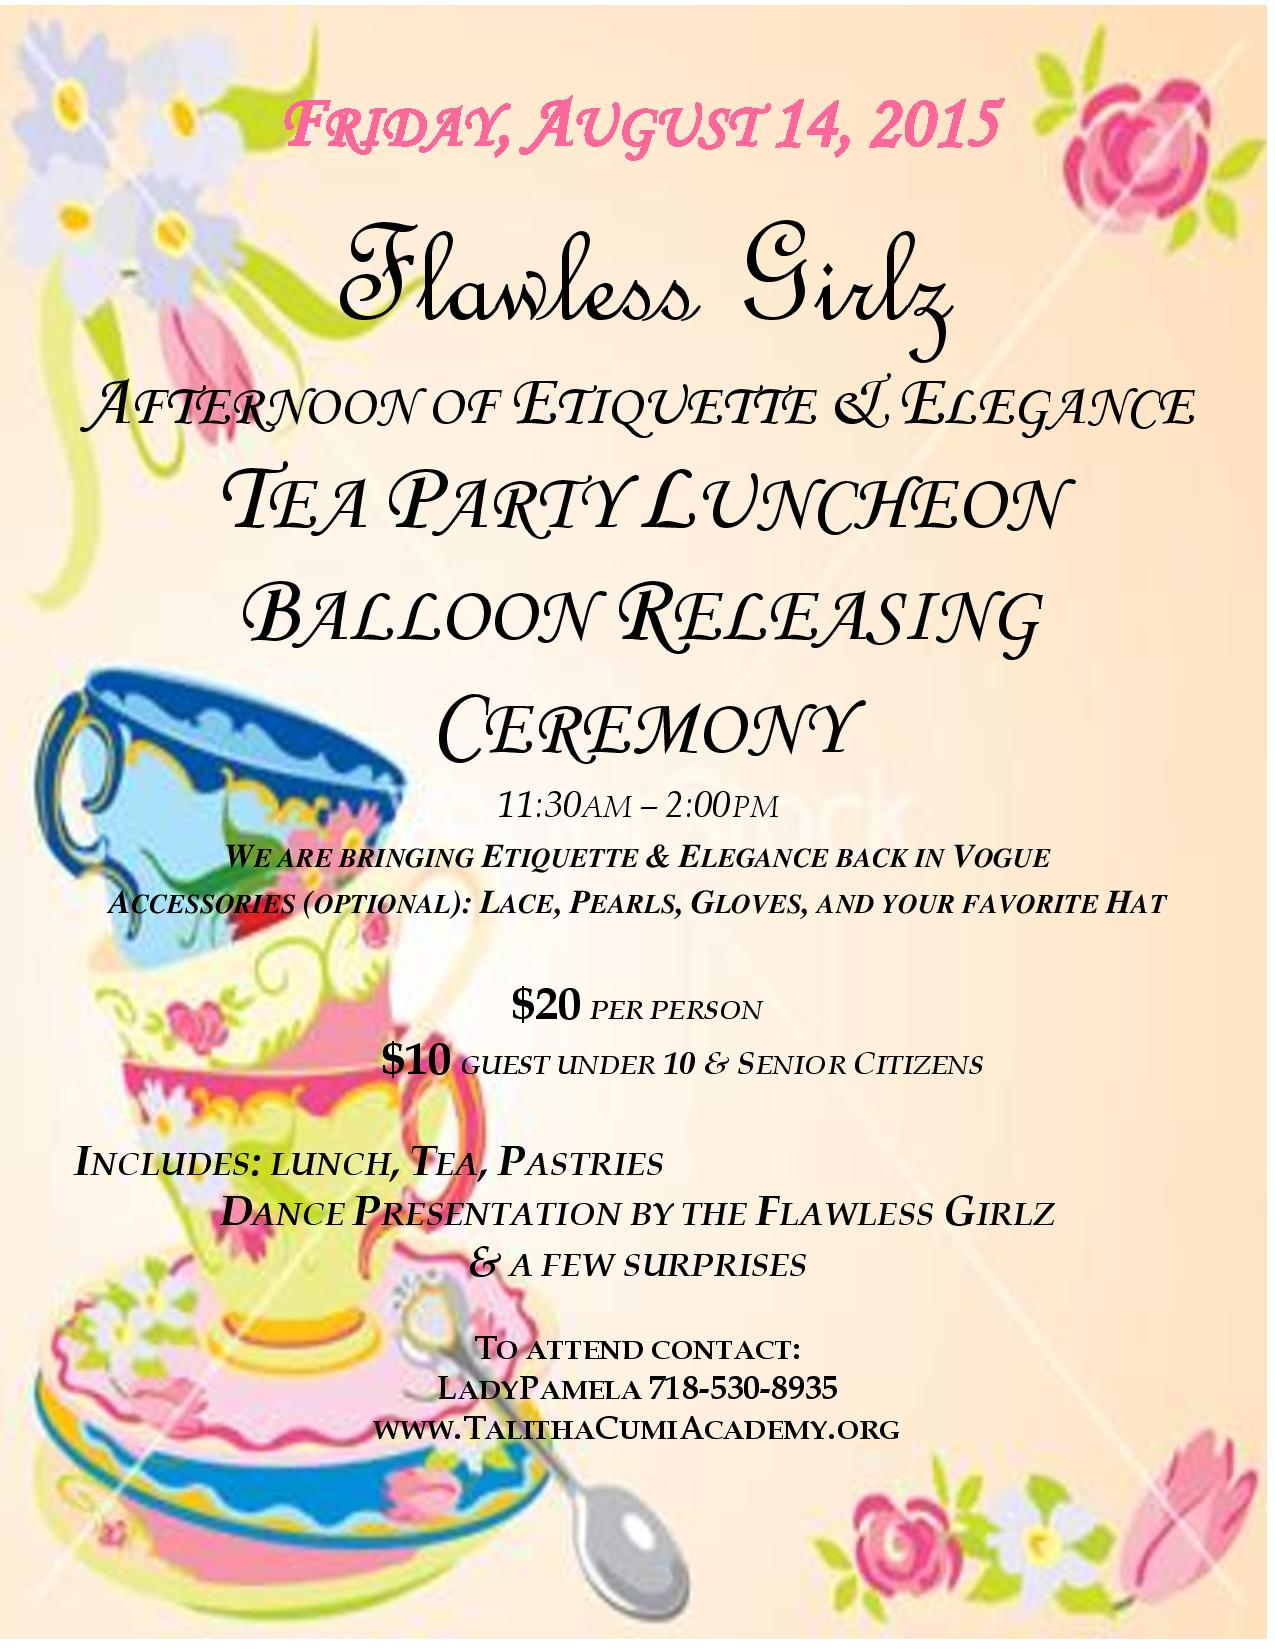 Afternoon of Etiquette & Elegance Tea Party Luncheon